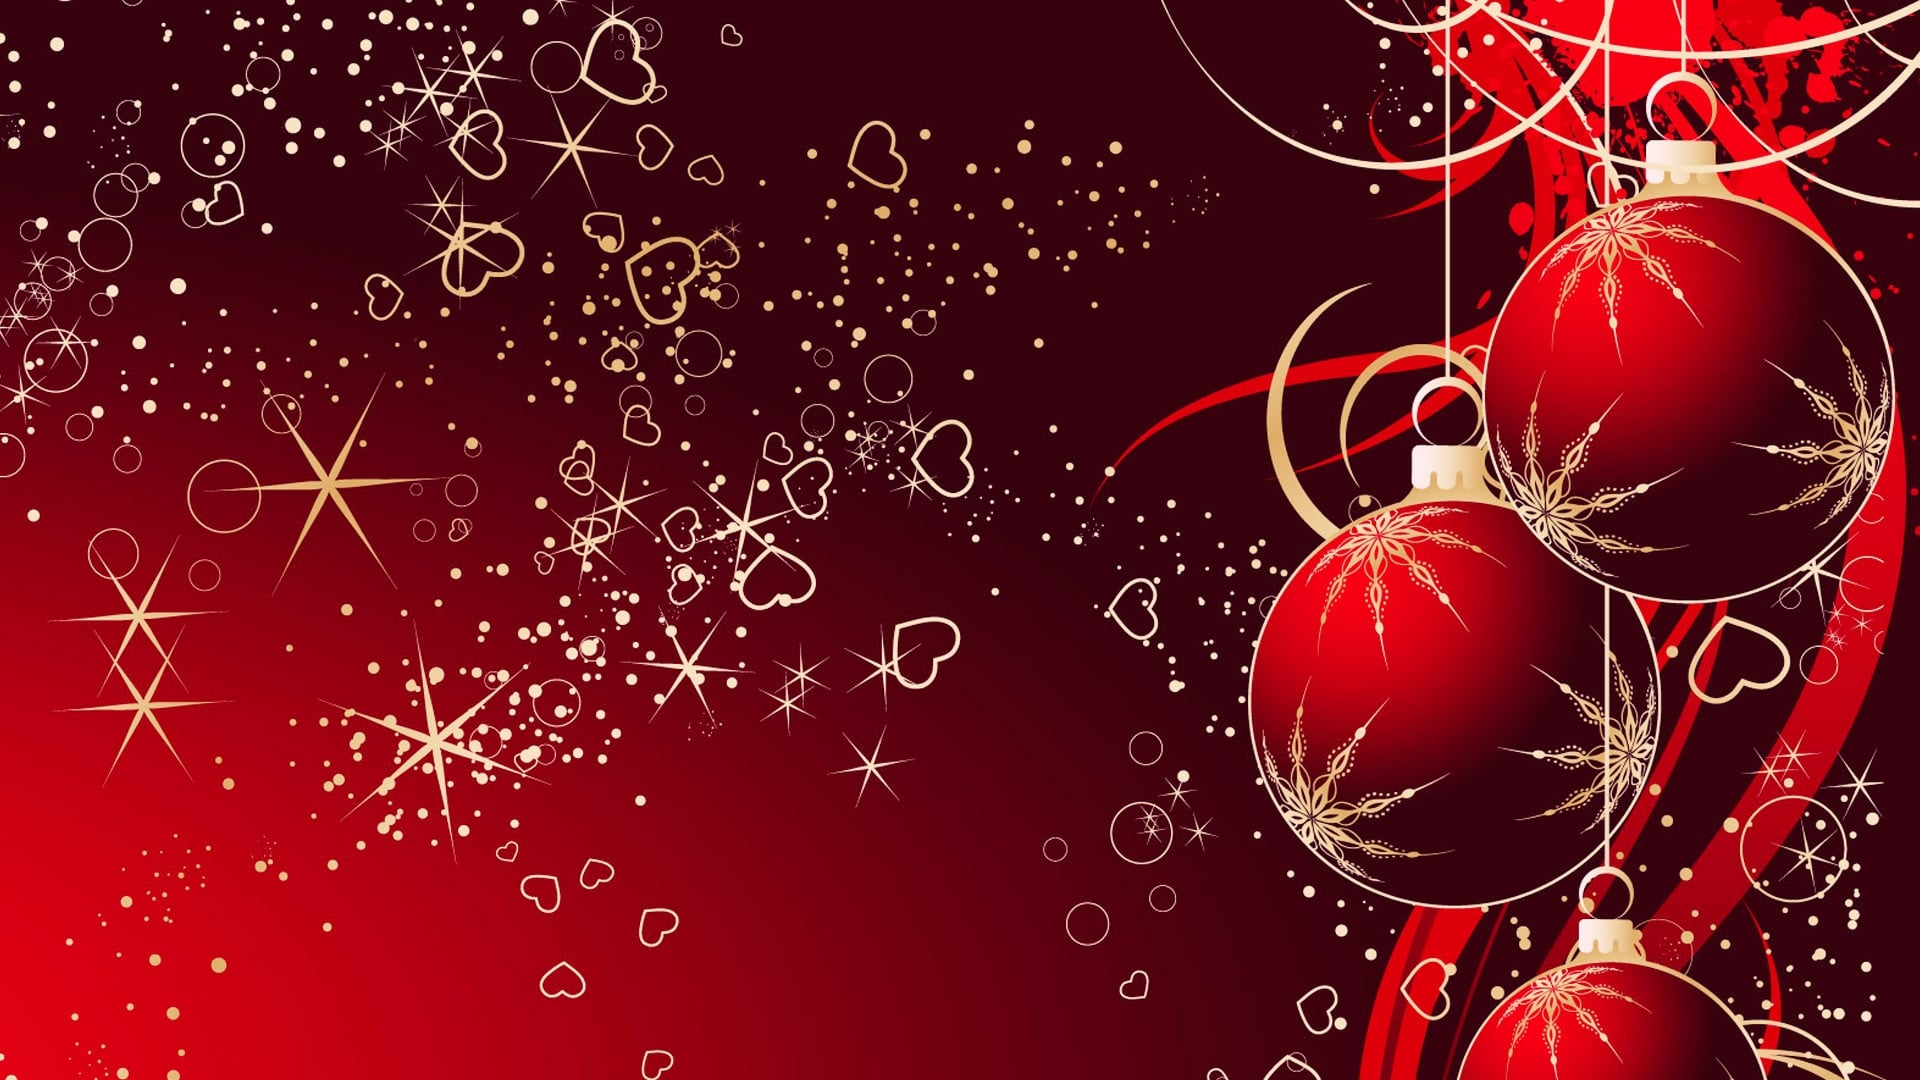 67 Christmas wallpapers HD Download 1920x1080